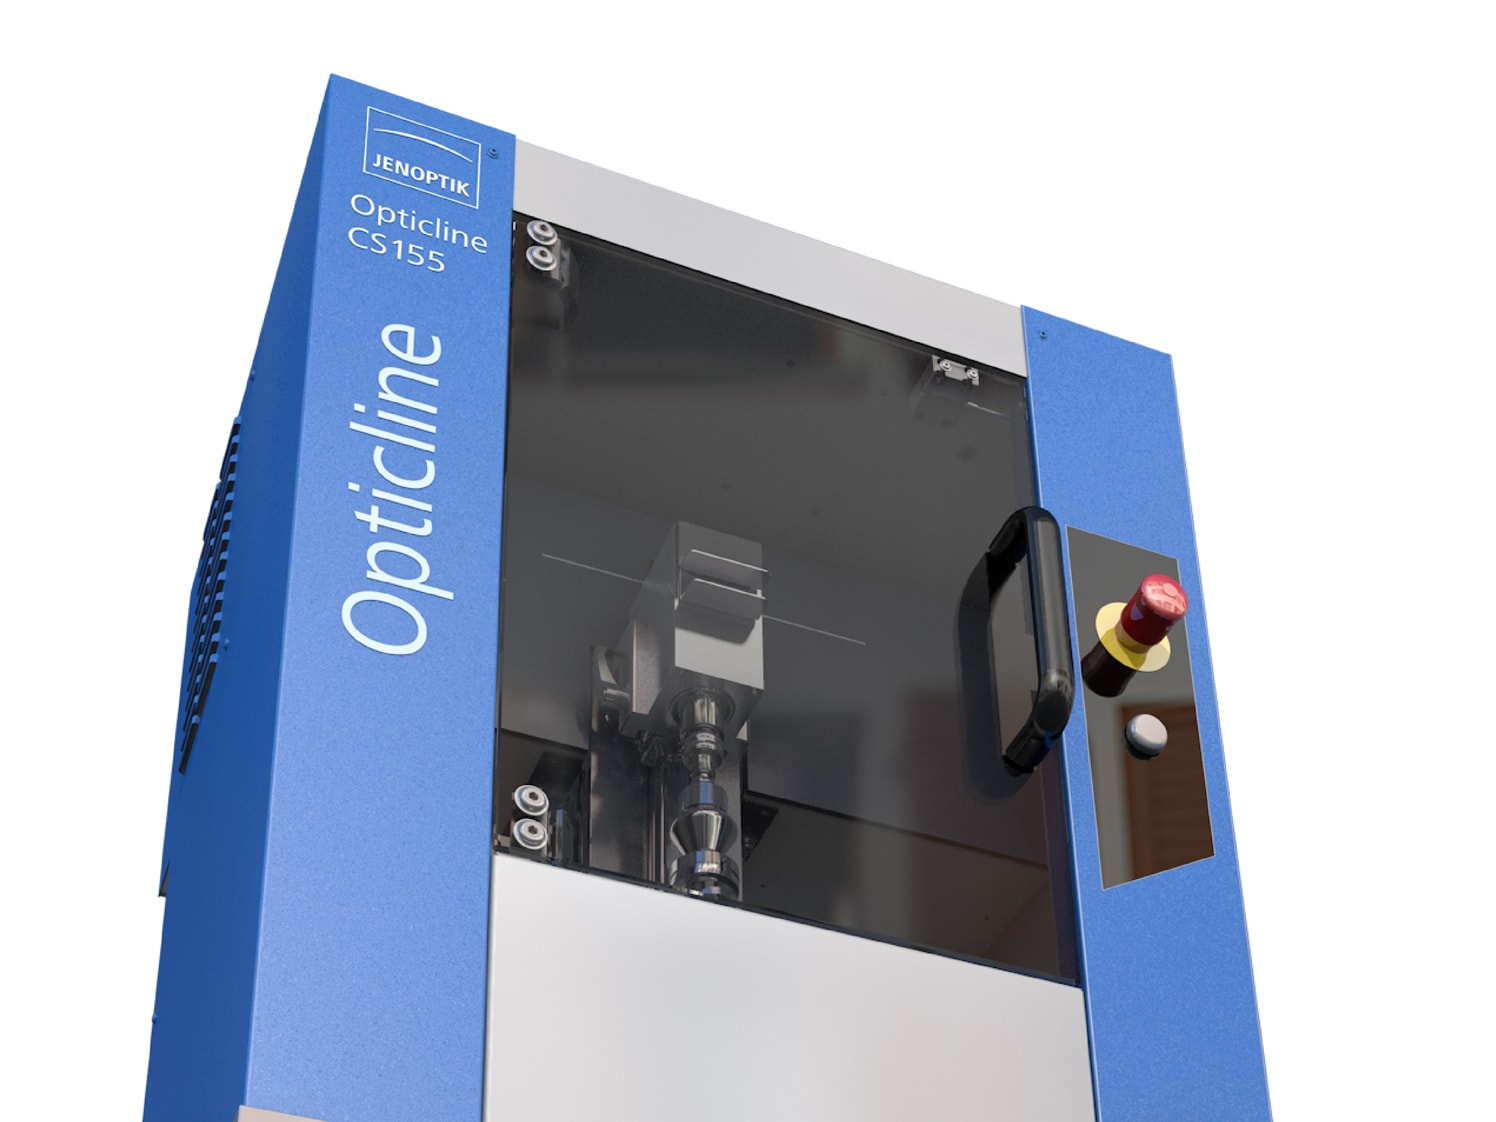 Opticline CS measurement systems